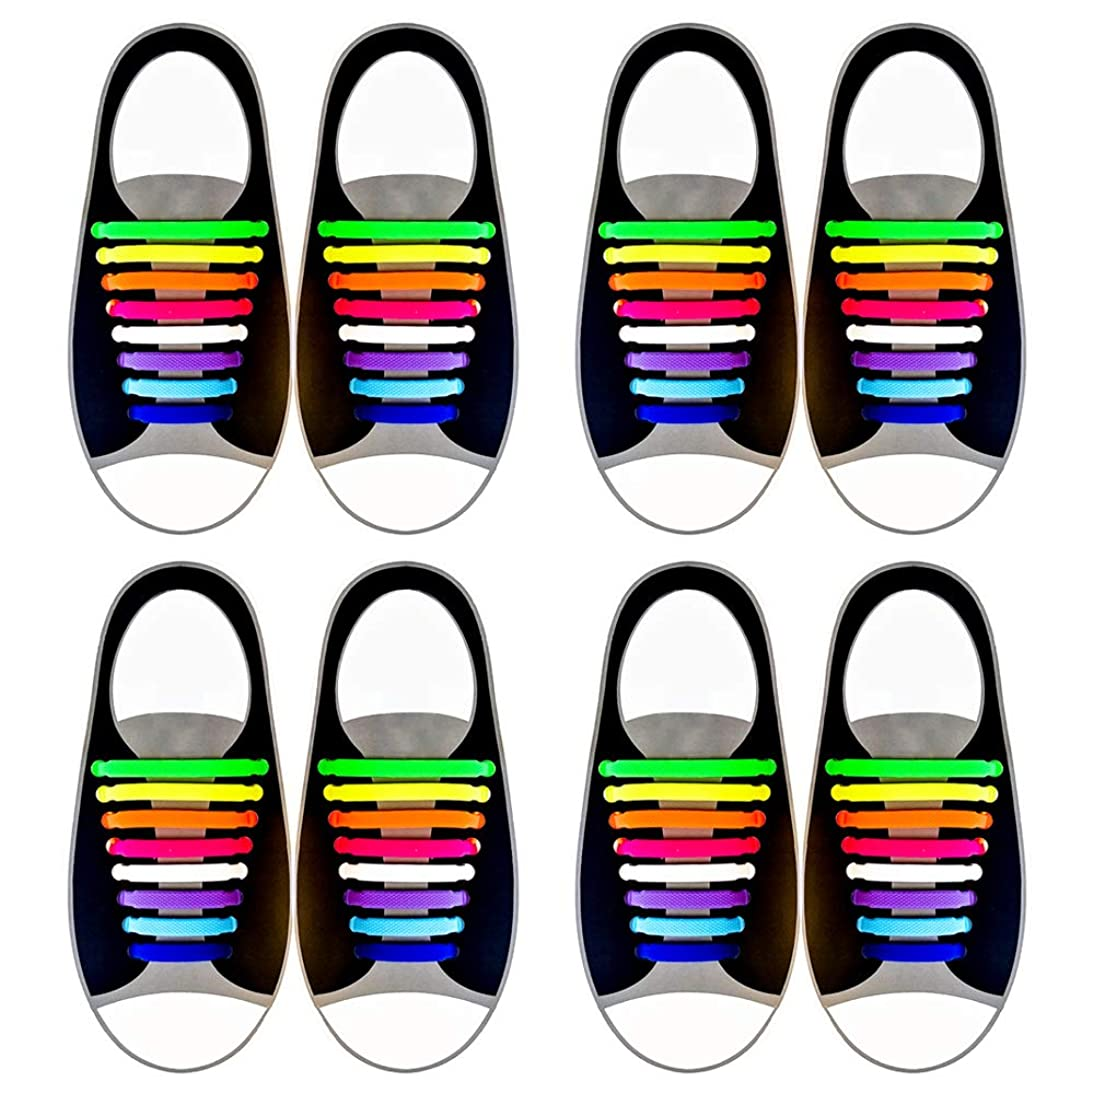 Herdro 4 Pack No Tie Shoelaces for Kids and Adults, Waterproof Silicone Flat Elastic Athletic Sport Shoe Laces for Sneakers Board Shoes (Multicolor) tcxv218802656873